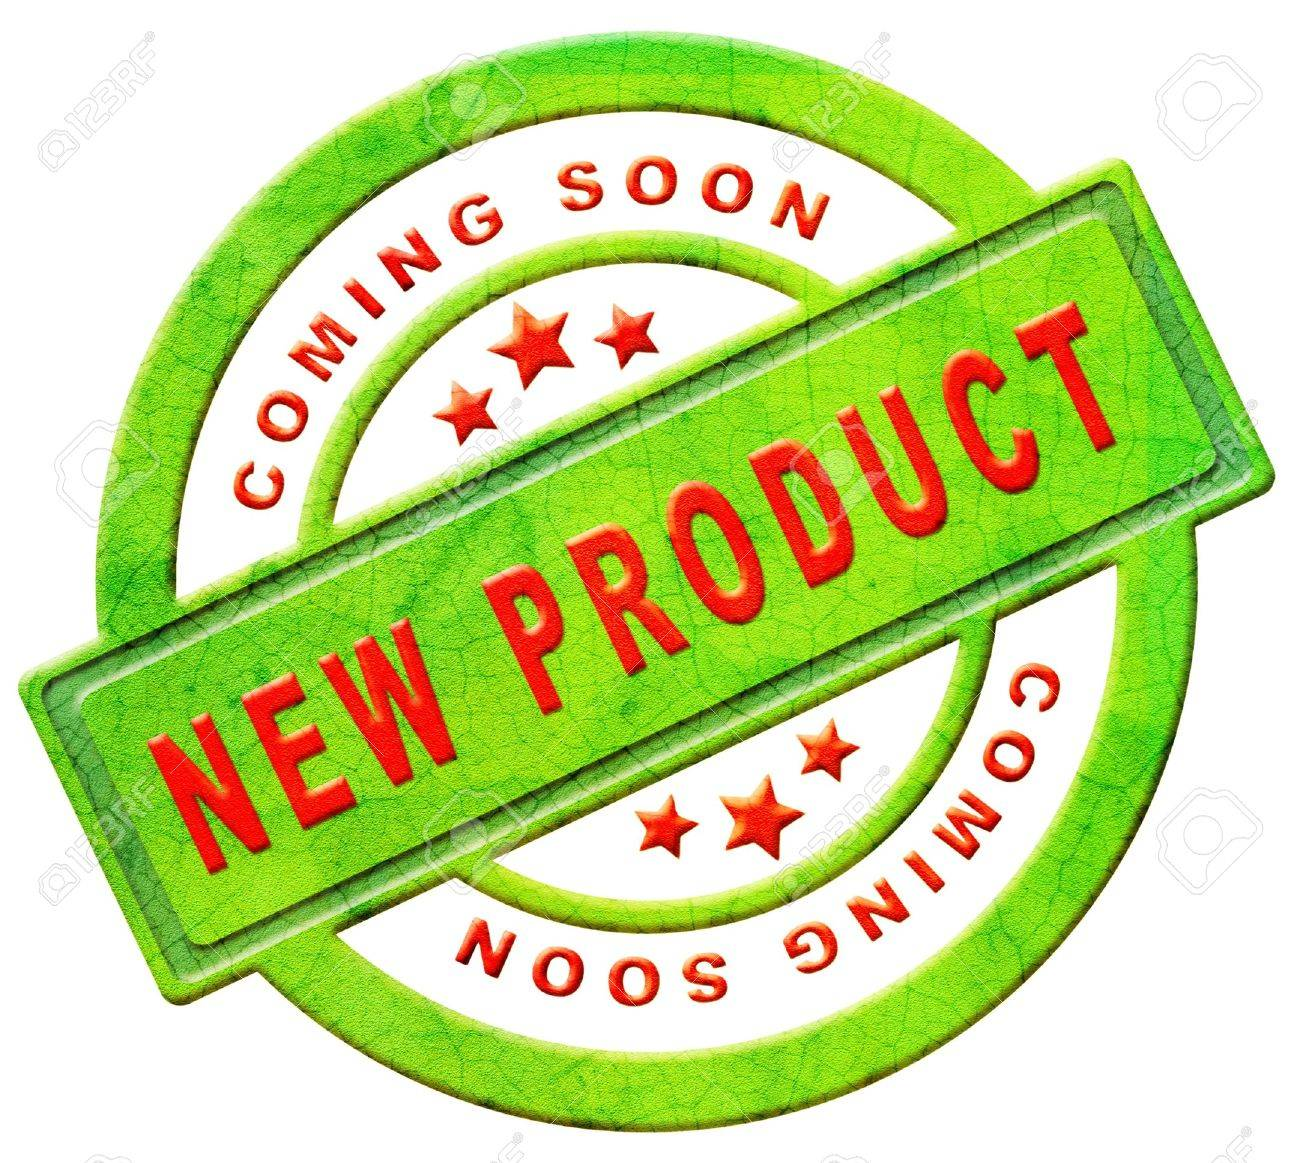 Exciting New Range Coming Soon